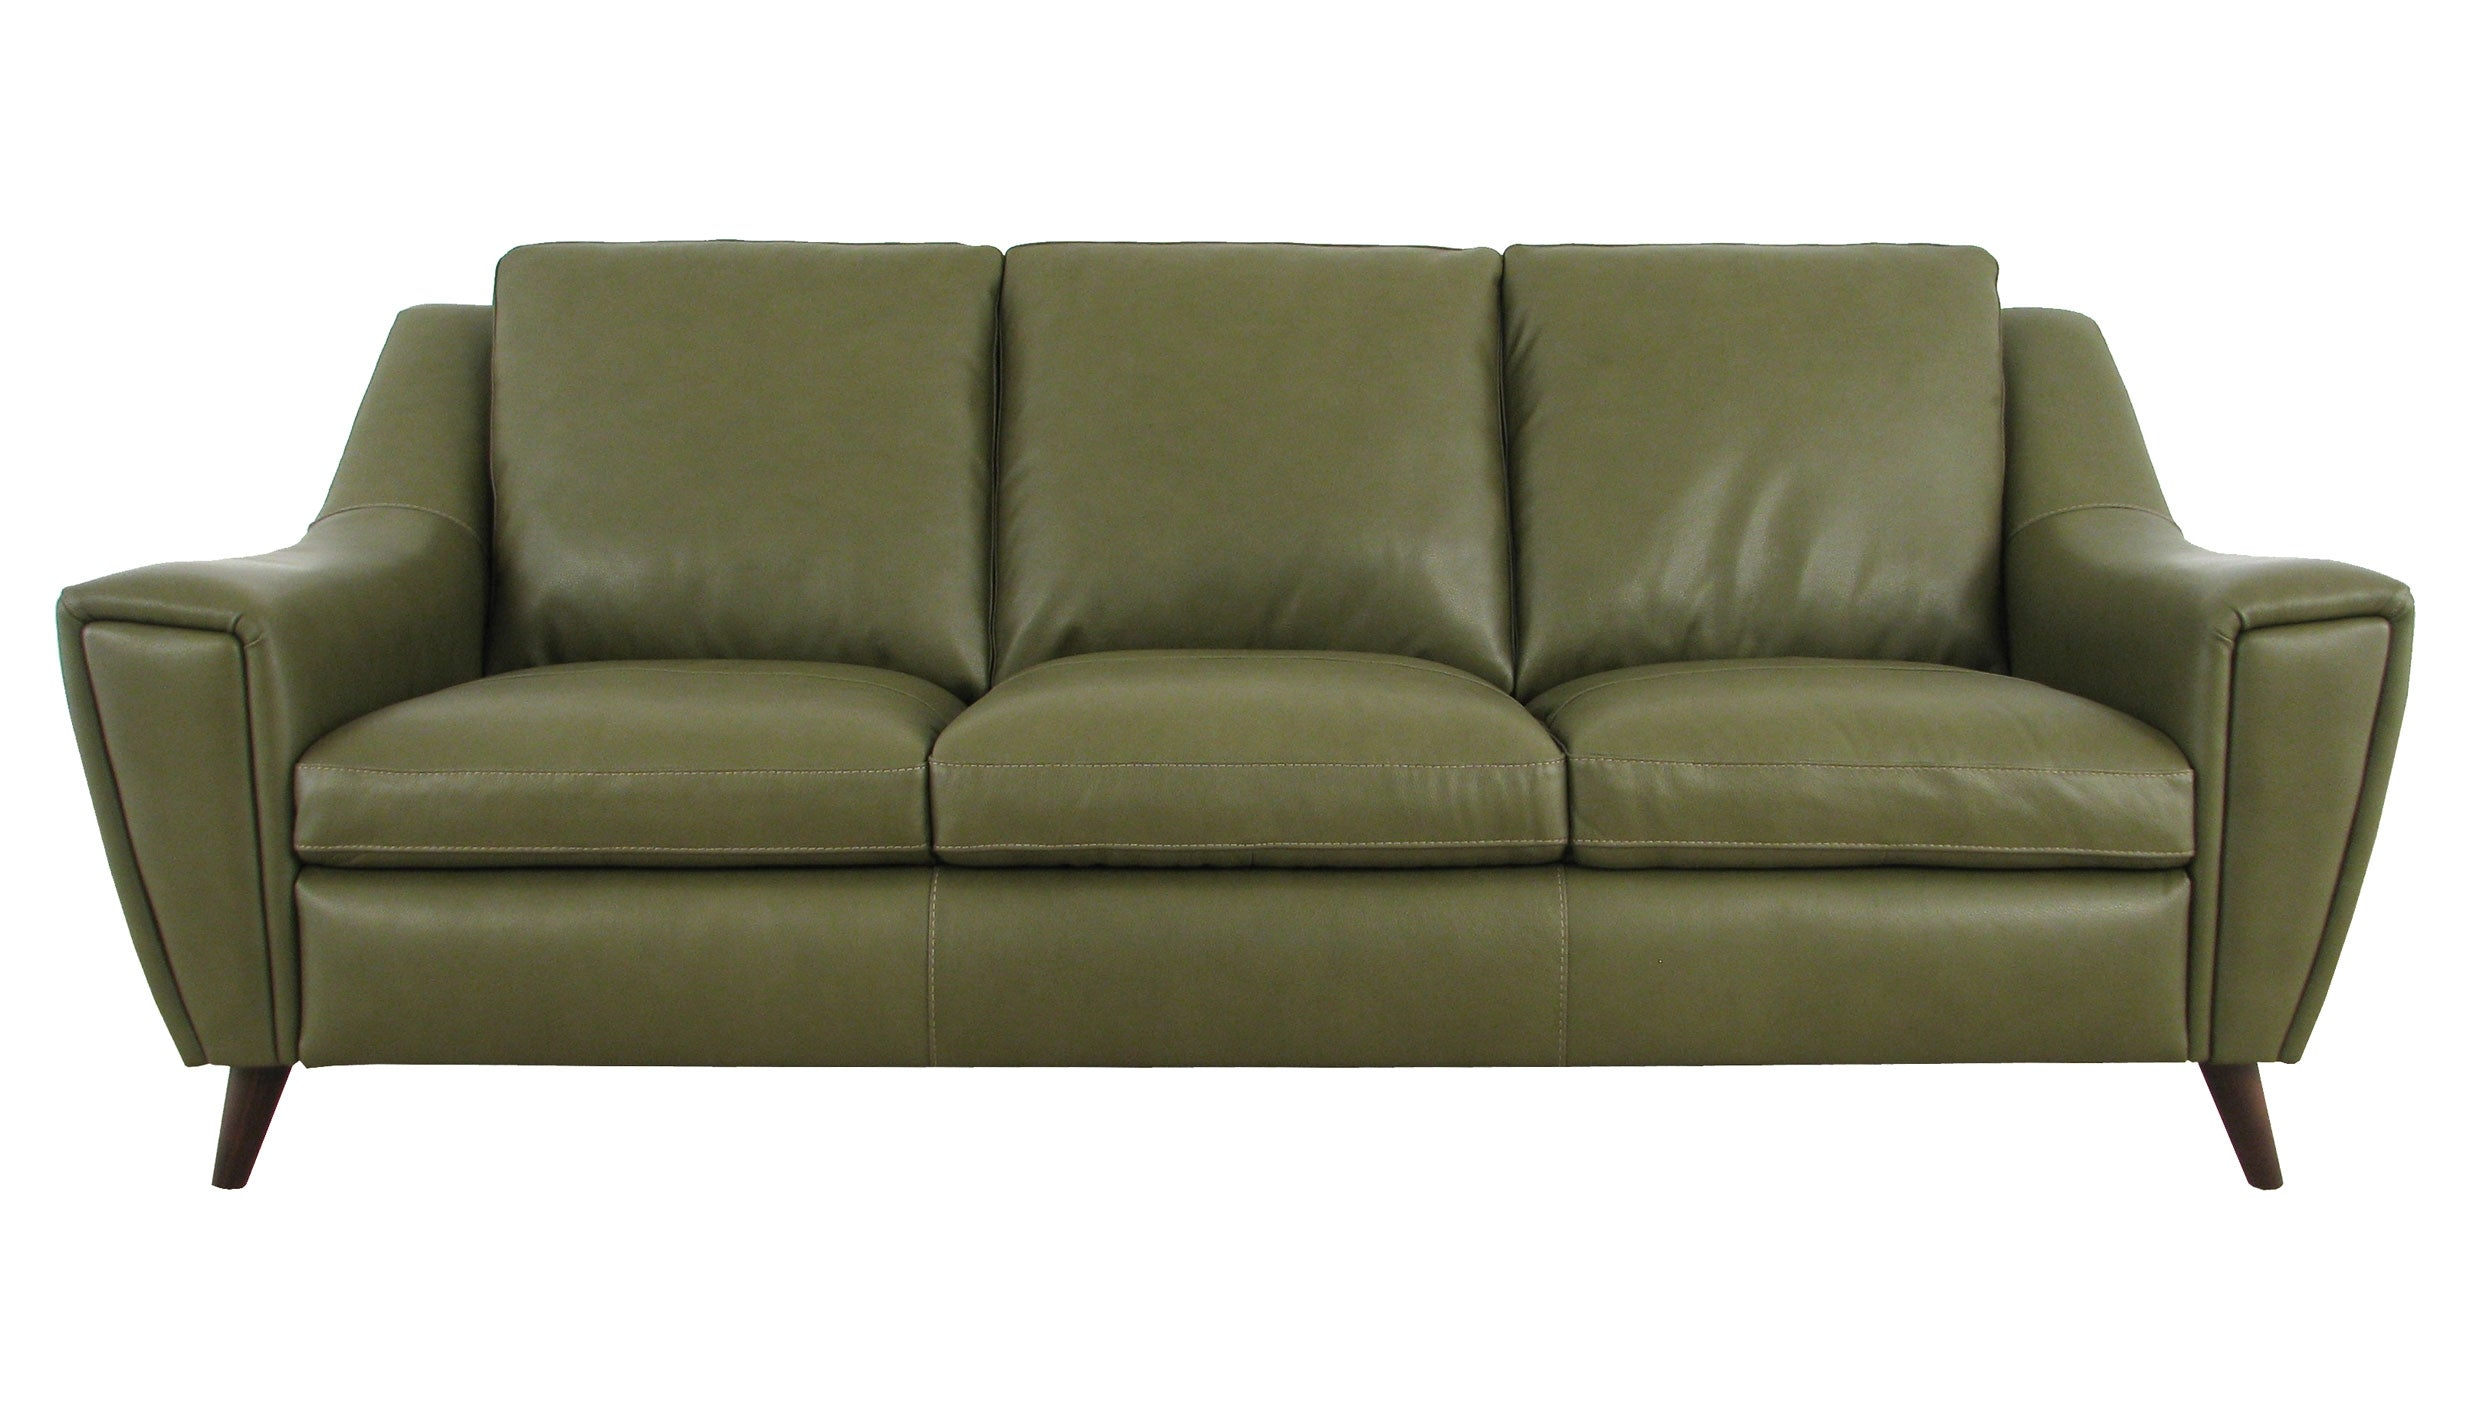 Betty 3 Seater Sofa in Leather - AHF Furniture & Carpets